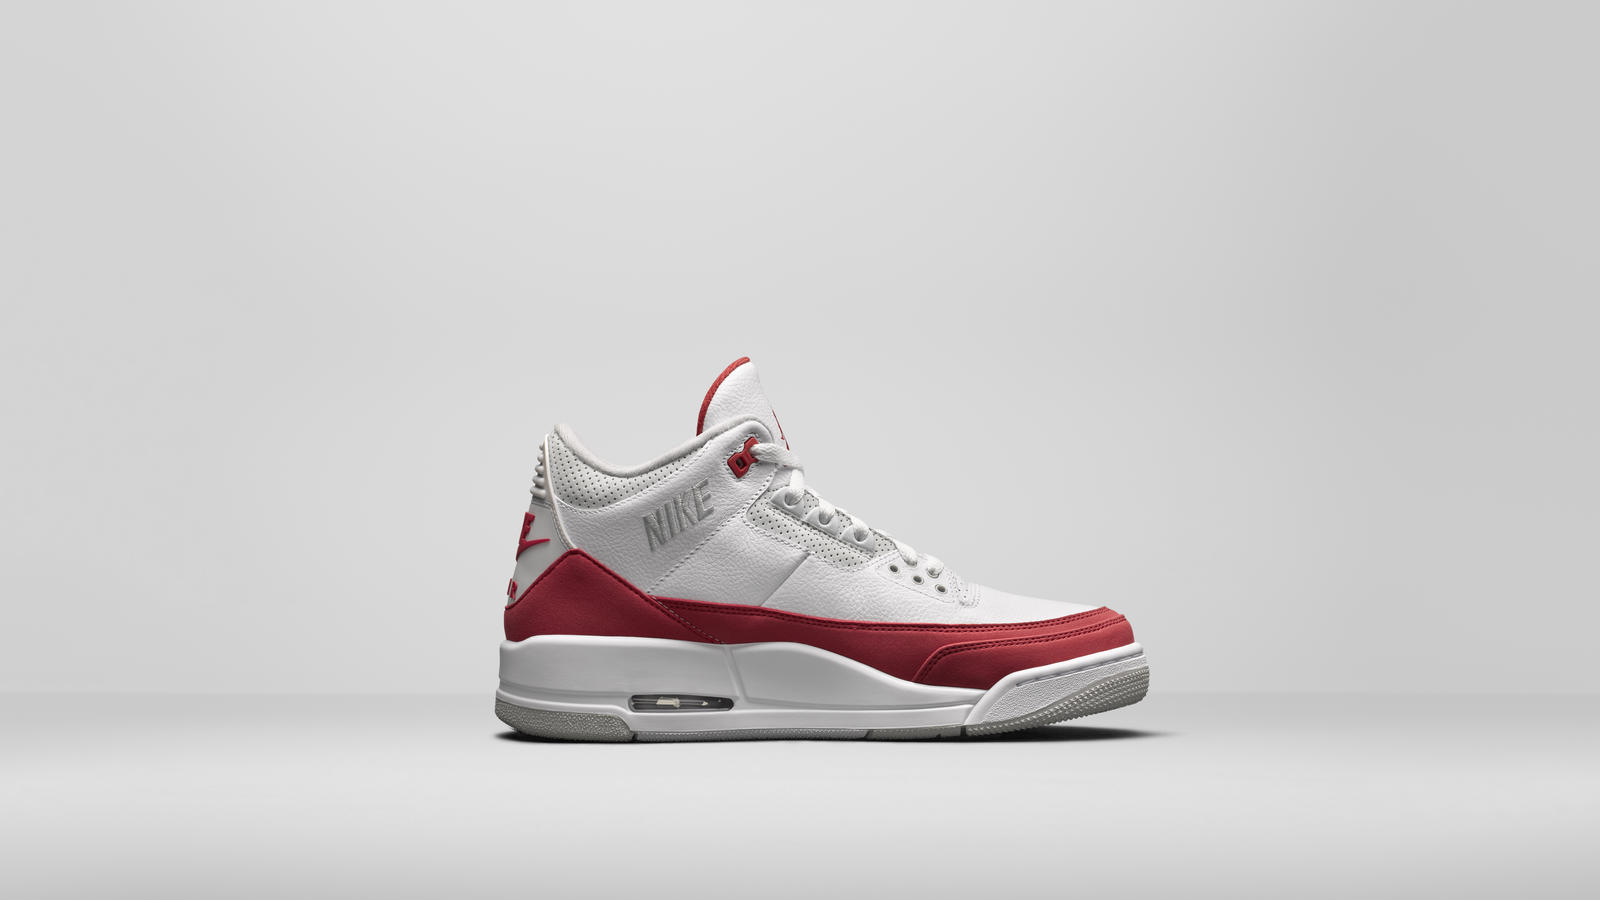 quality design f664a 66d71 Air Jordan III Tinker